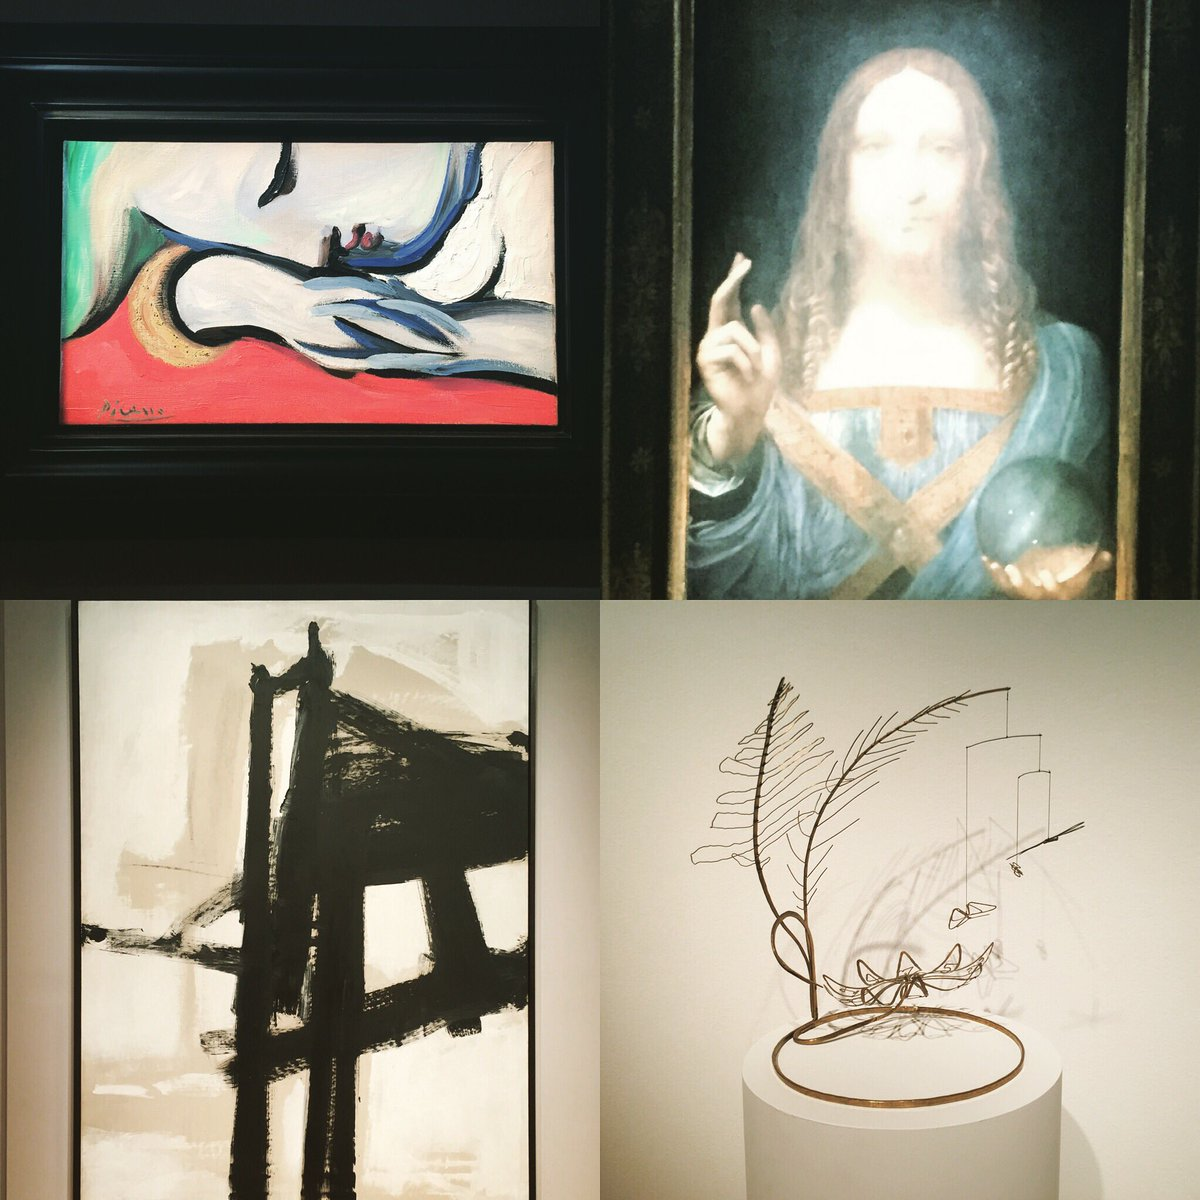 Art at @christiesinc is so spectacular it made me want to go home and wash my car. #davinci #picasso #calder #franzkline #ididnotwashmycar<br>http://pic.twitter.com/viJl83Bidl